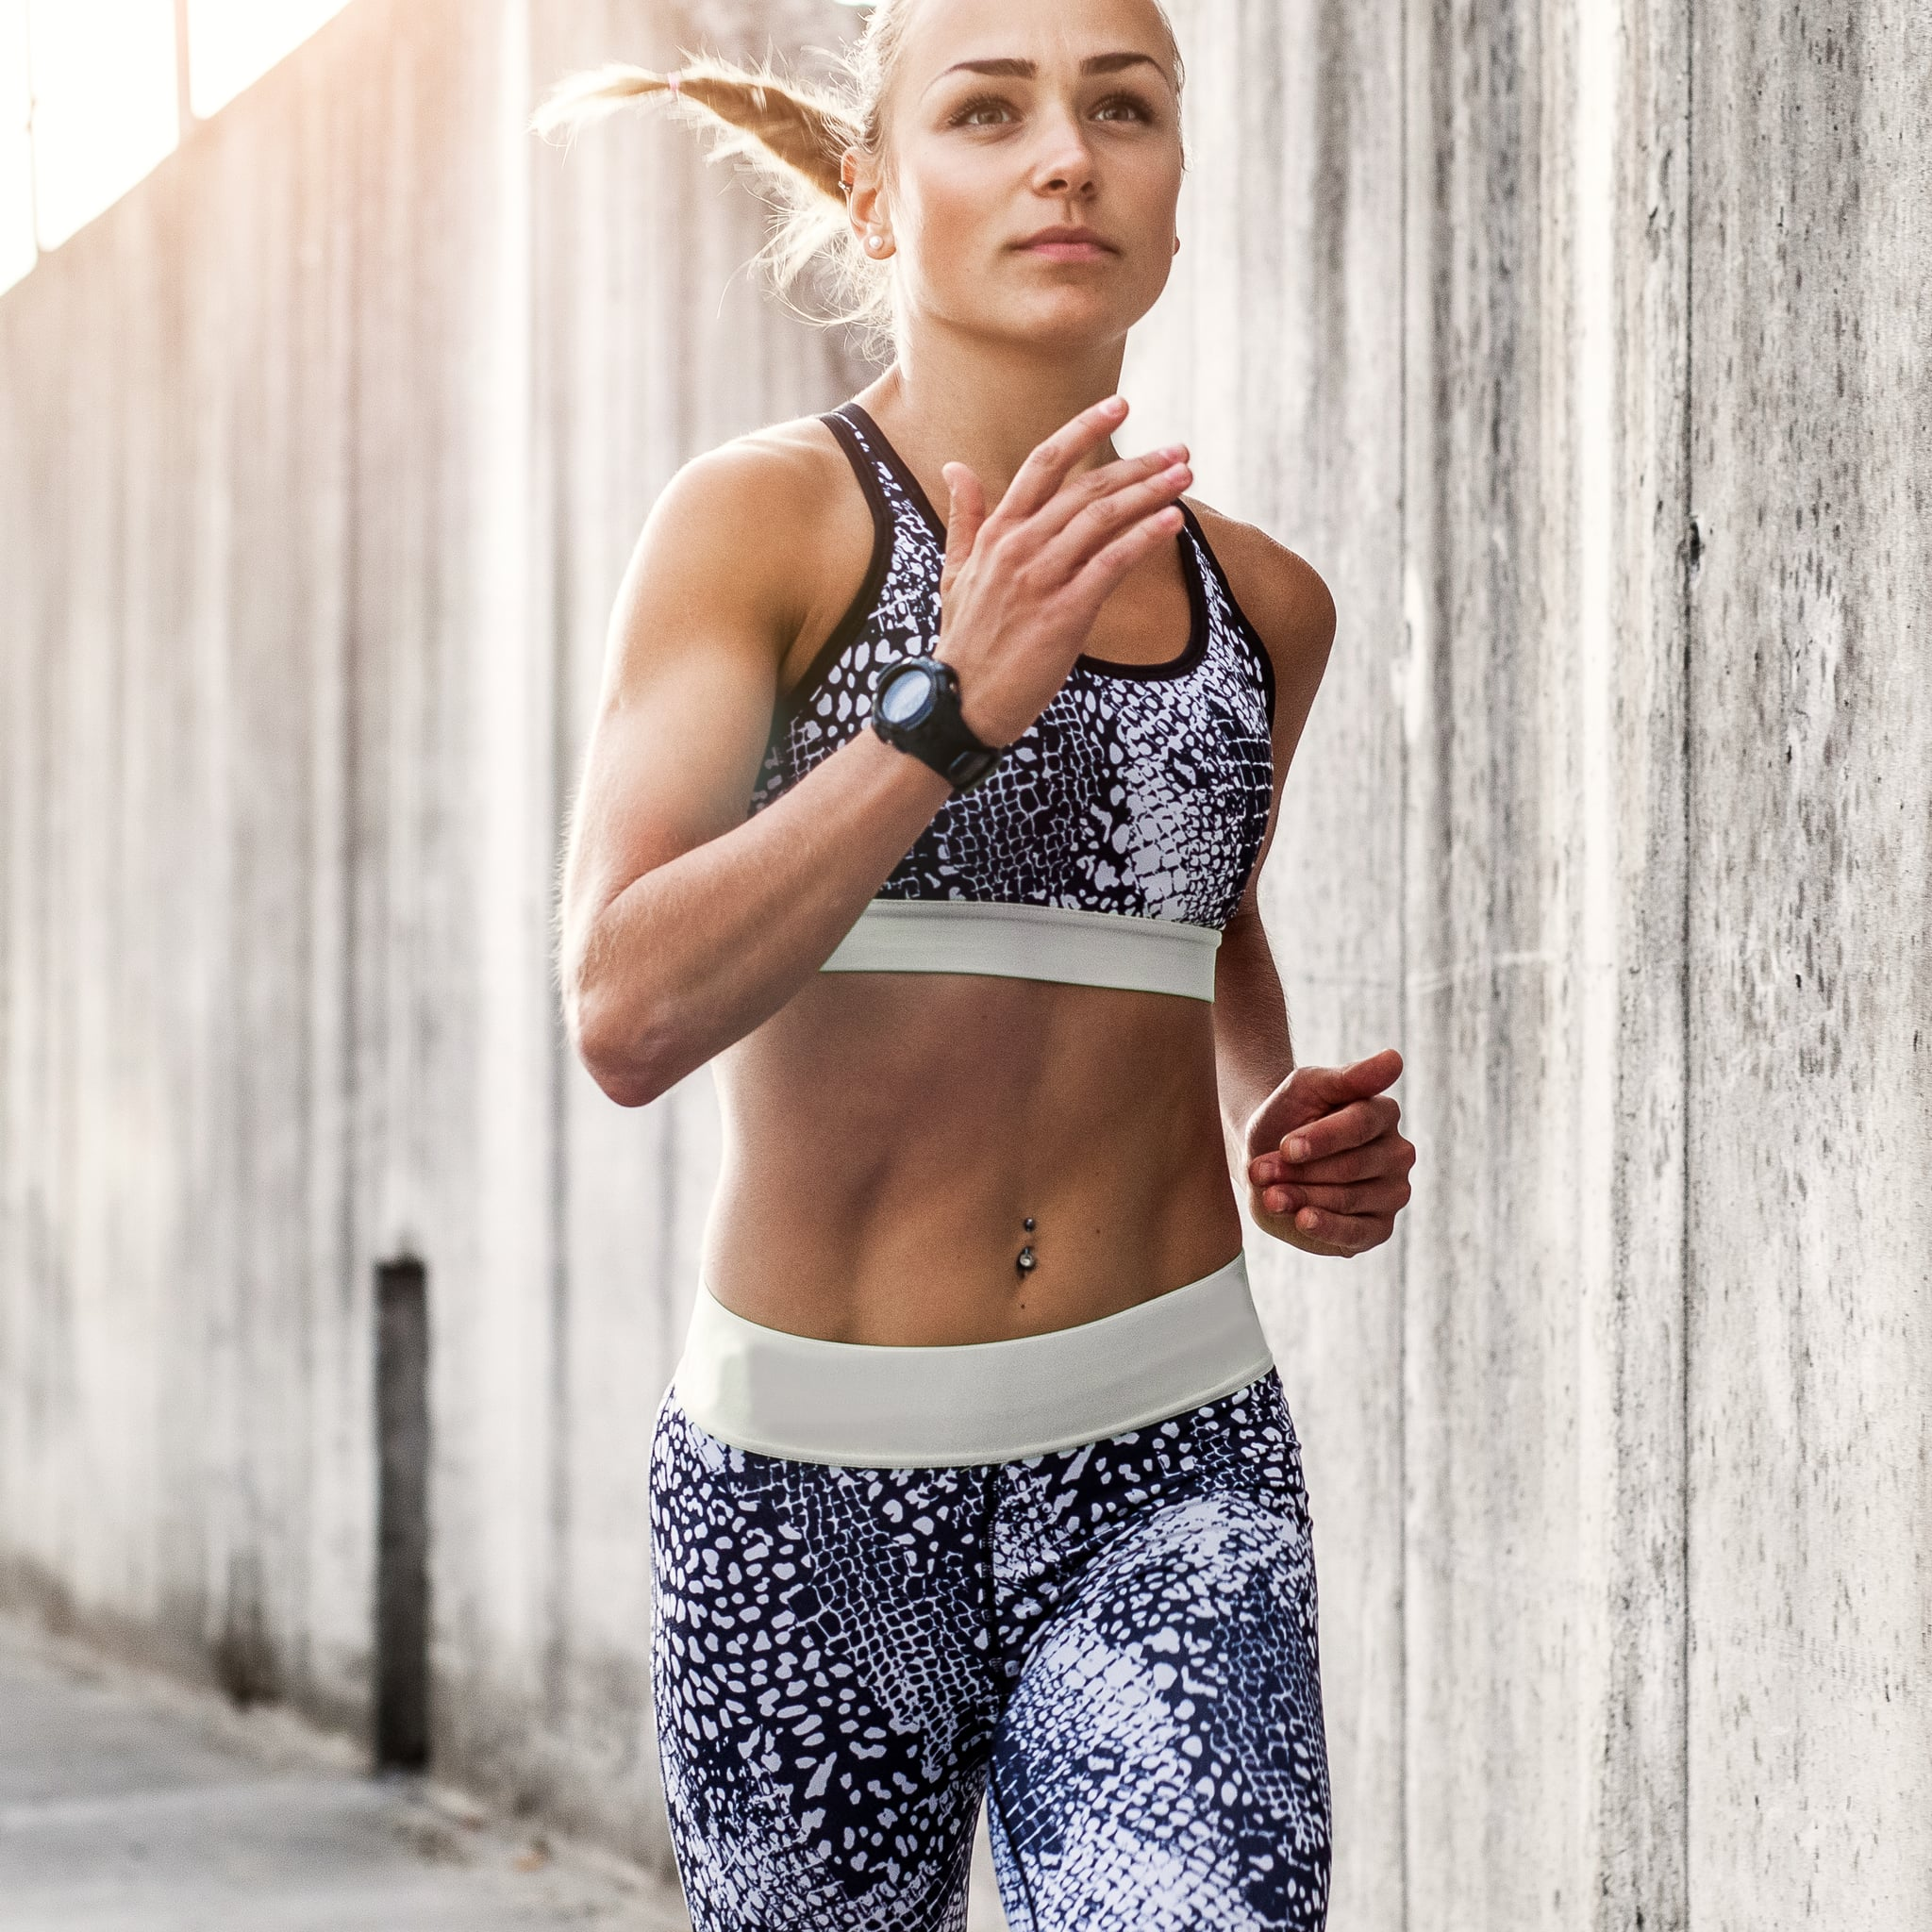 Dumbbell Workout For Runners | POPSUGAR Fitness Australia